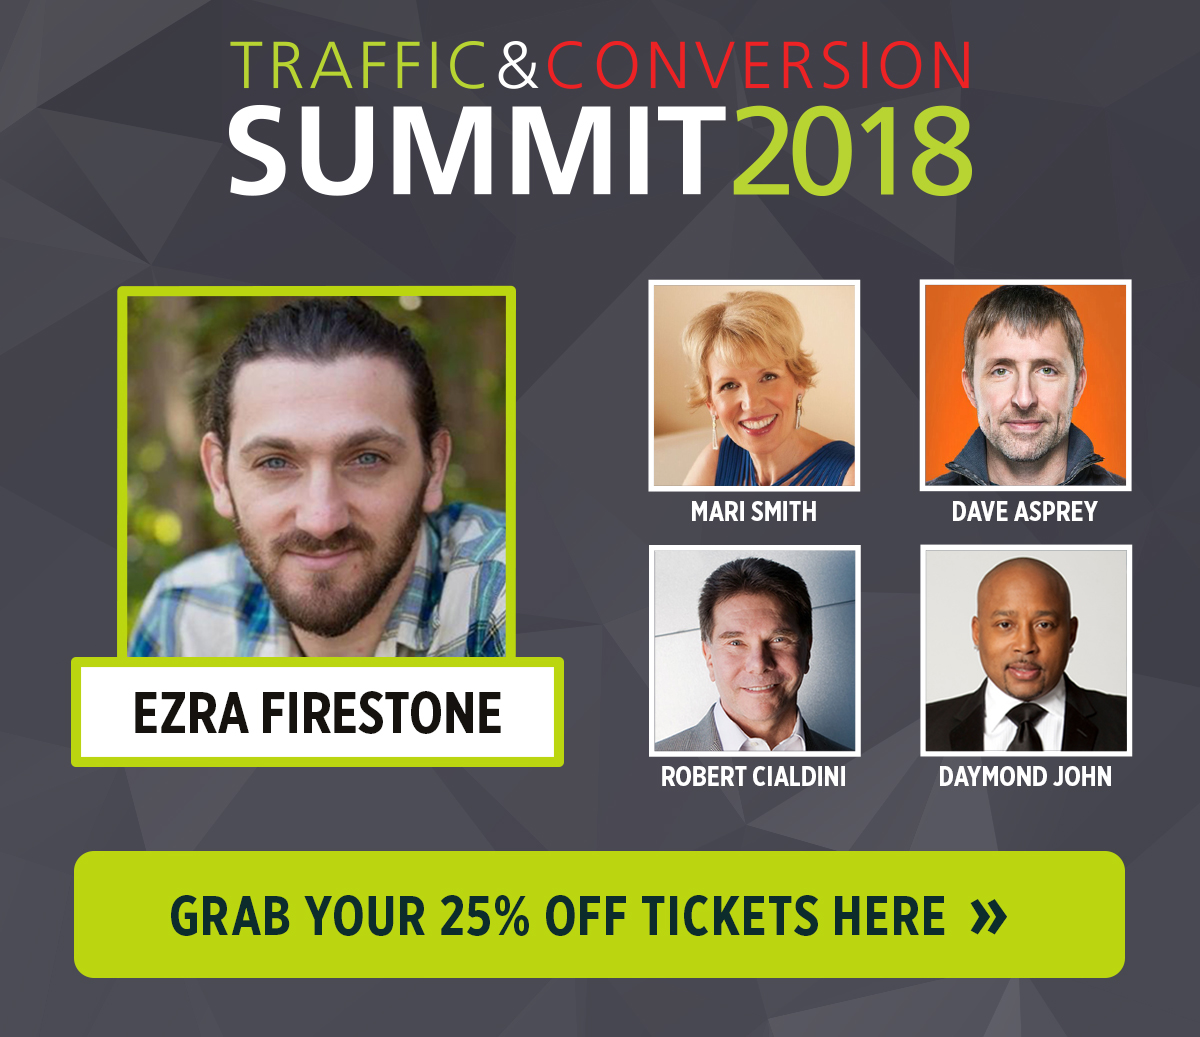 See Ezra Firestone speak at Traffic & Conversion Summit 2018 and save 25% off your ticket!